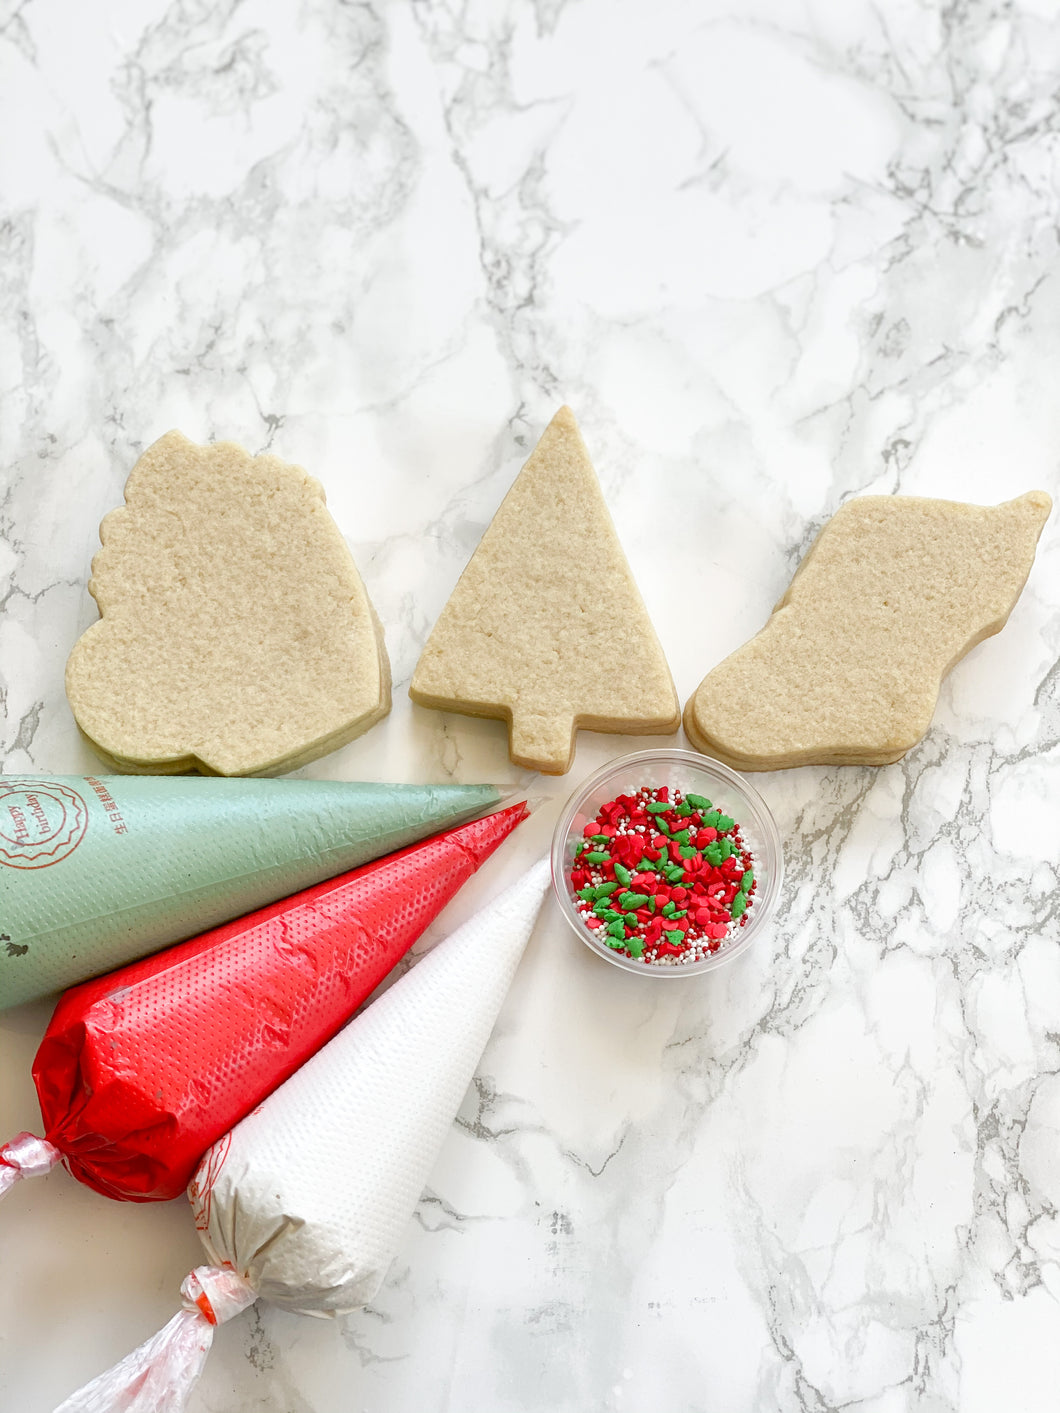 Cookie decorating kit